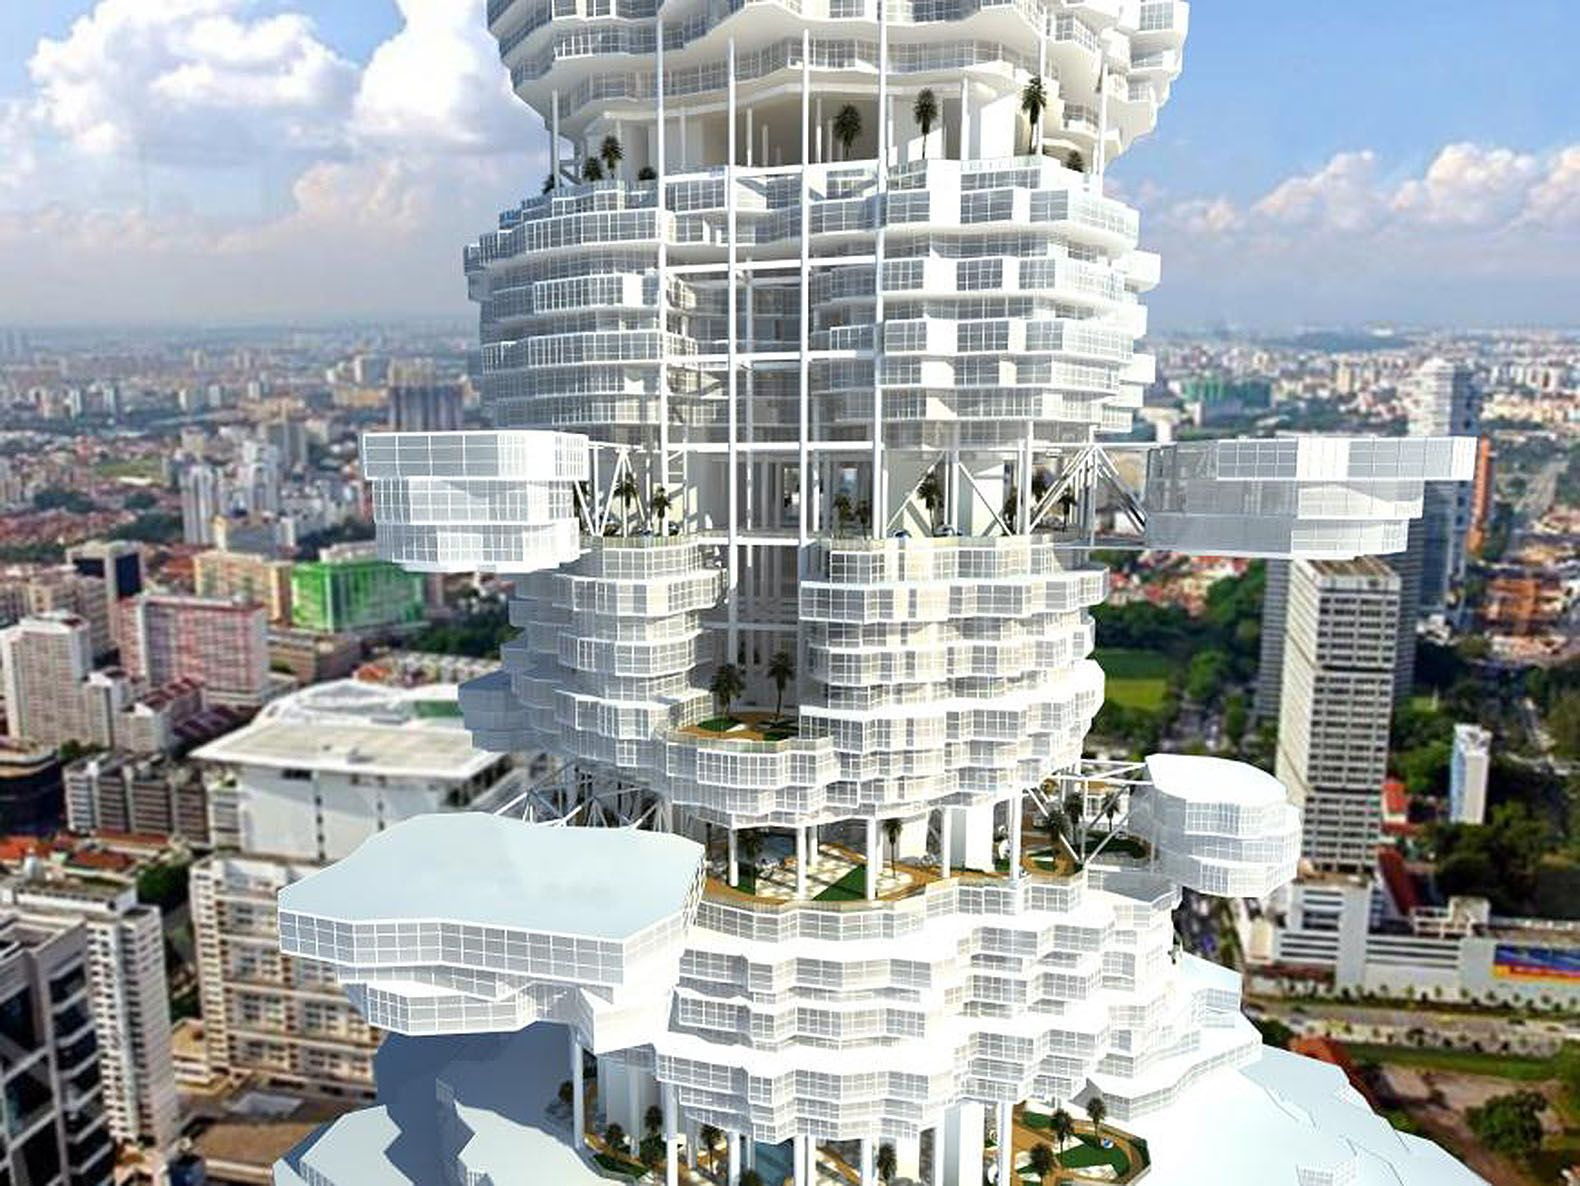 Futuristic Cloud City skyscraper could bring the dream of